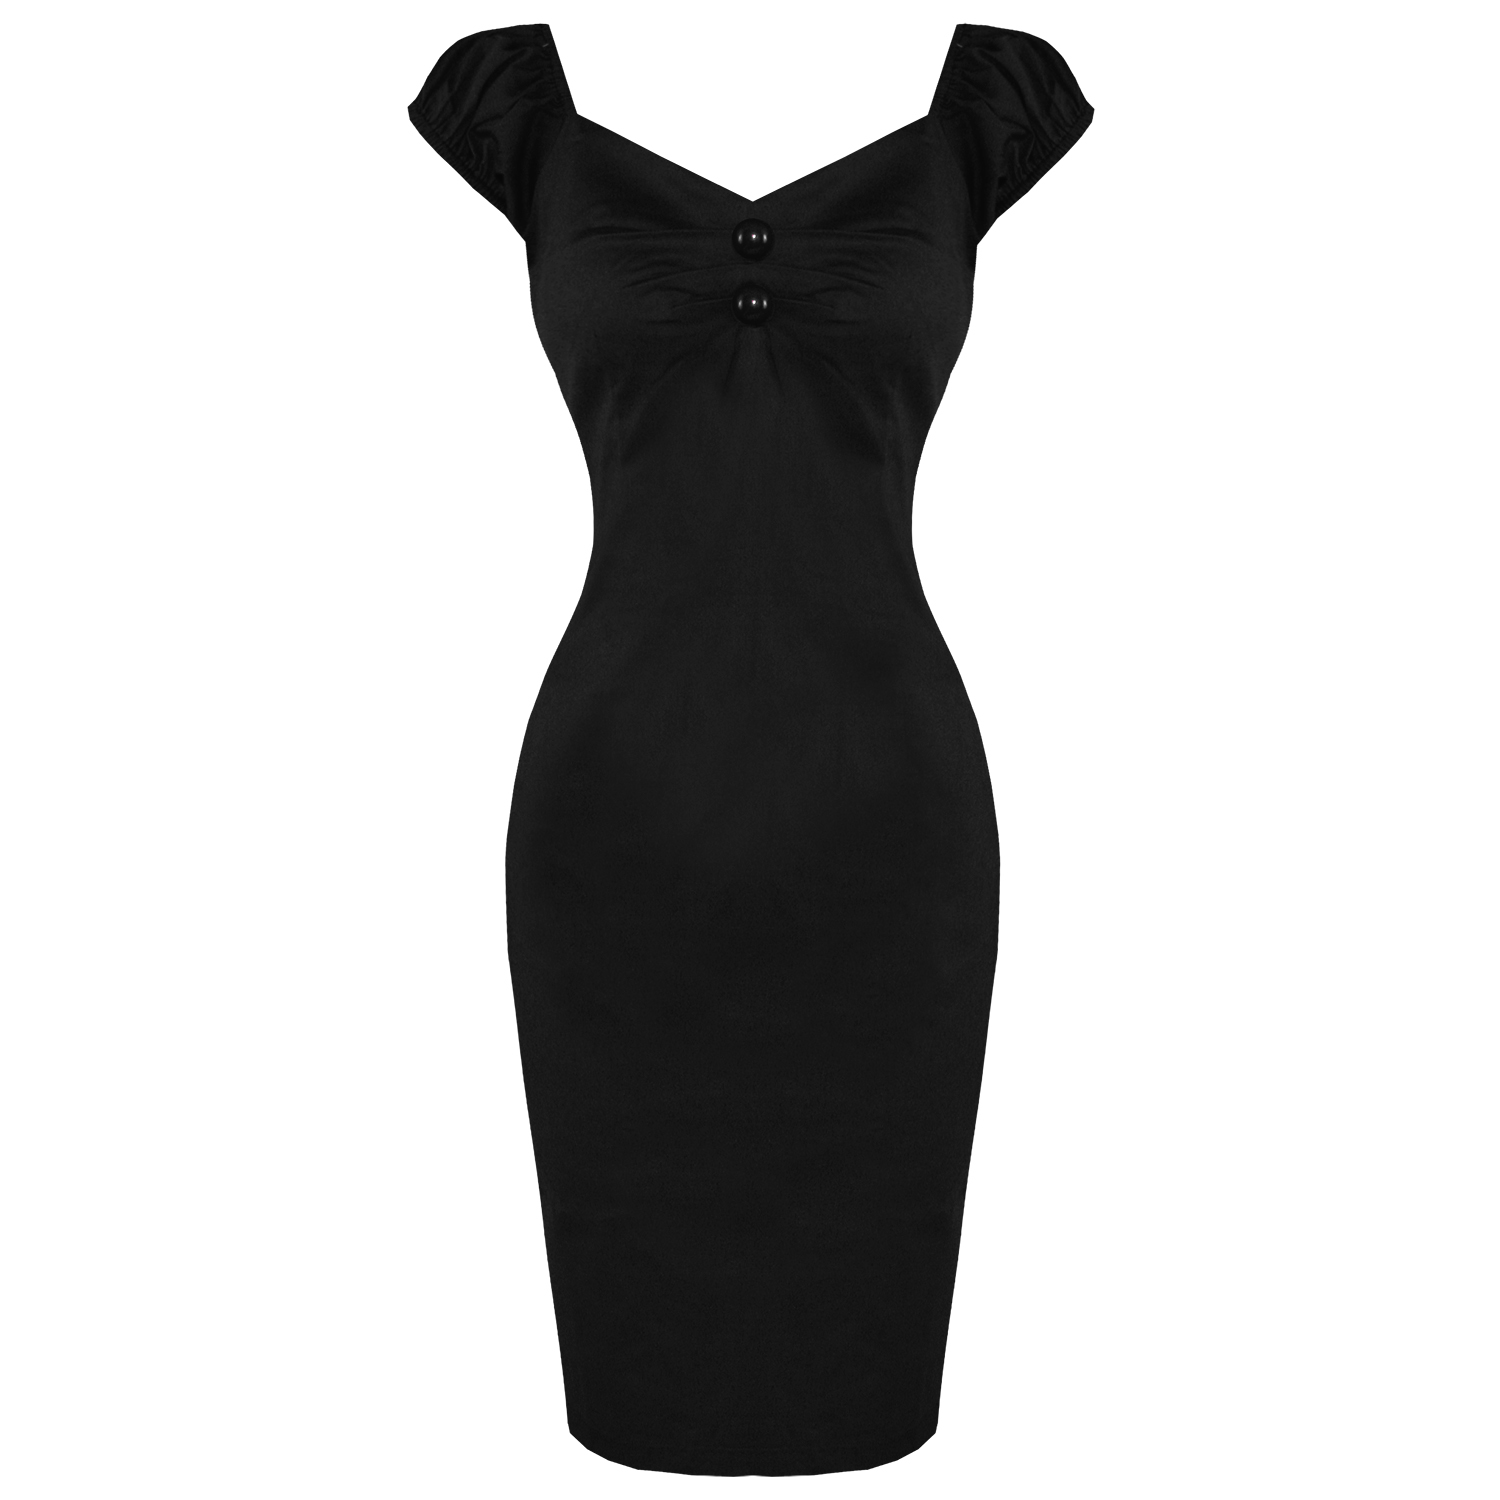 COLLECTIF-DOLORES-PLAIN-BLACK-FITTED-VINTAGE-1950S-CAREER-PENCIL-WIGGLE-DRESS